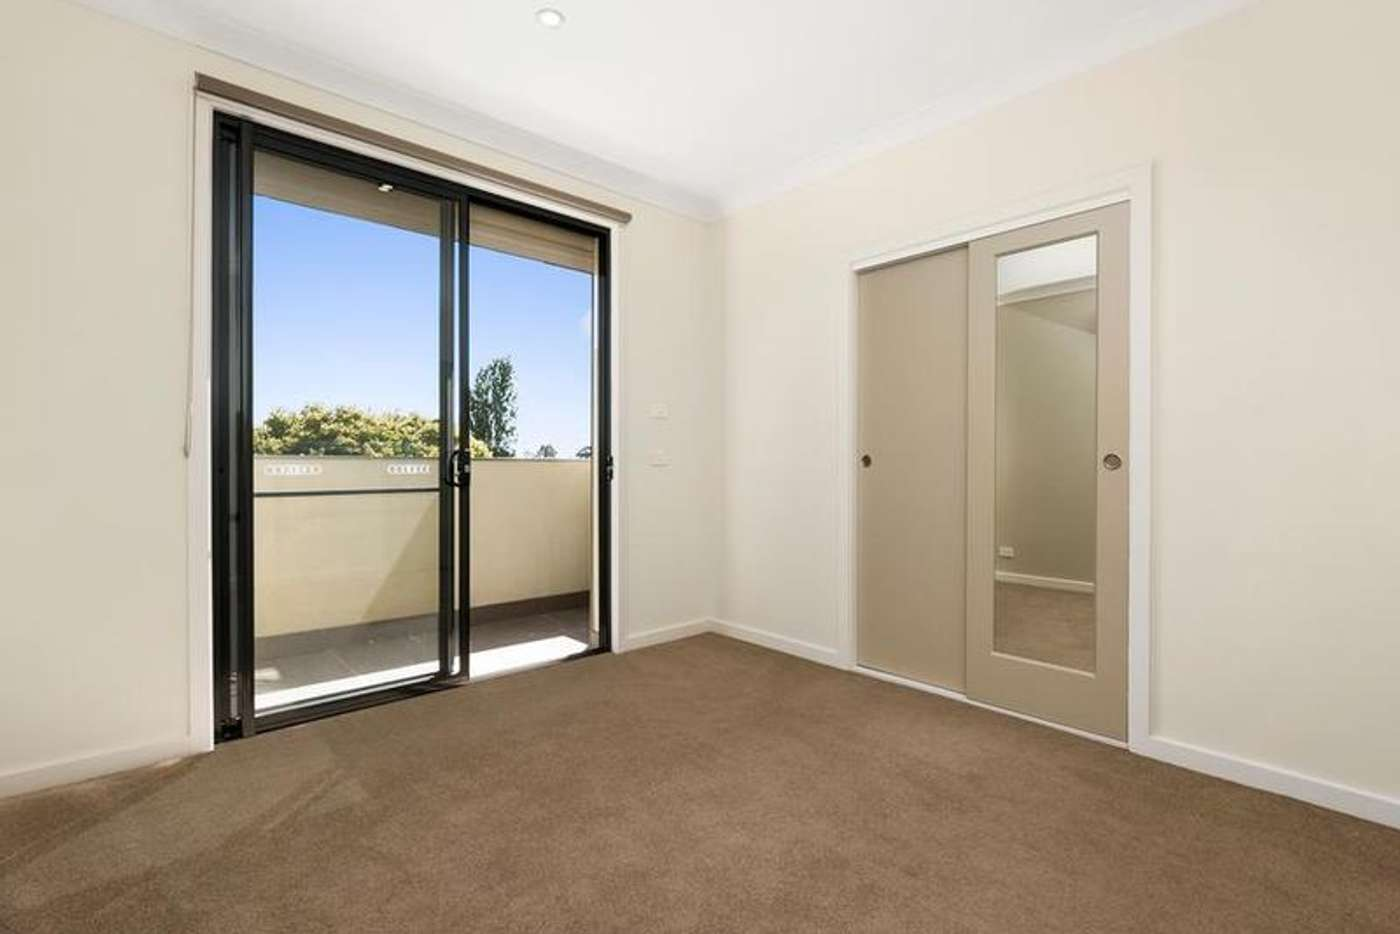 Fifth view of Homely house listing, 1/7 Johnston Street, Burwood VIC 3125